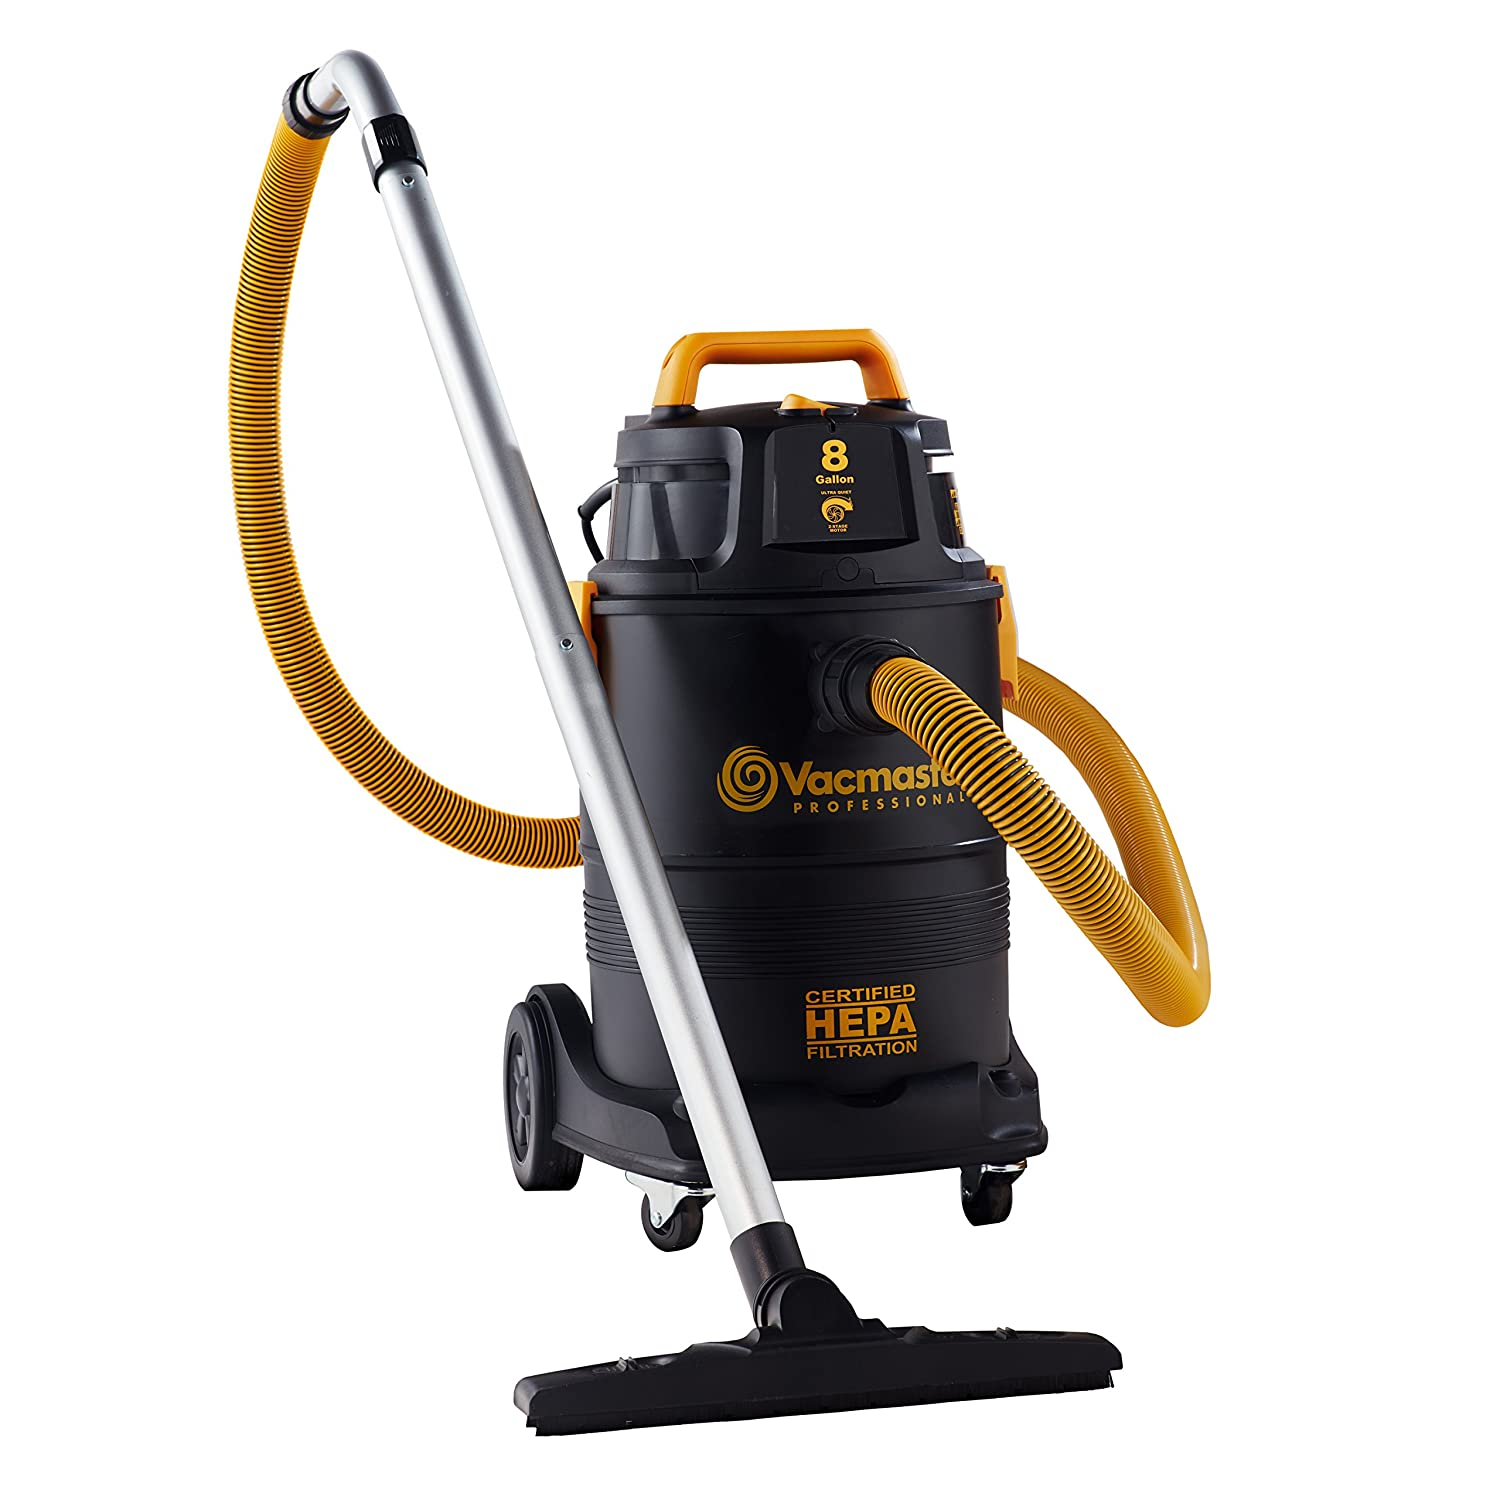 Vacmaster Shop Vac with 2 Stage Motor and HEPA Filter